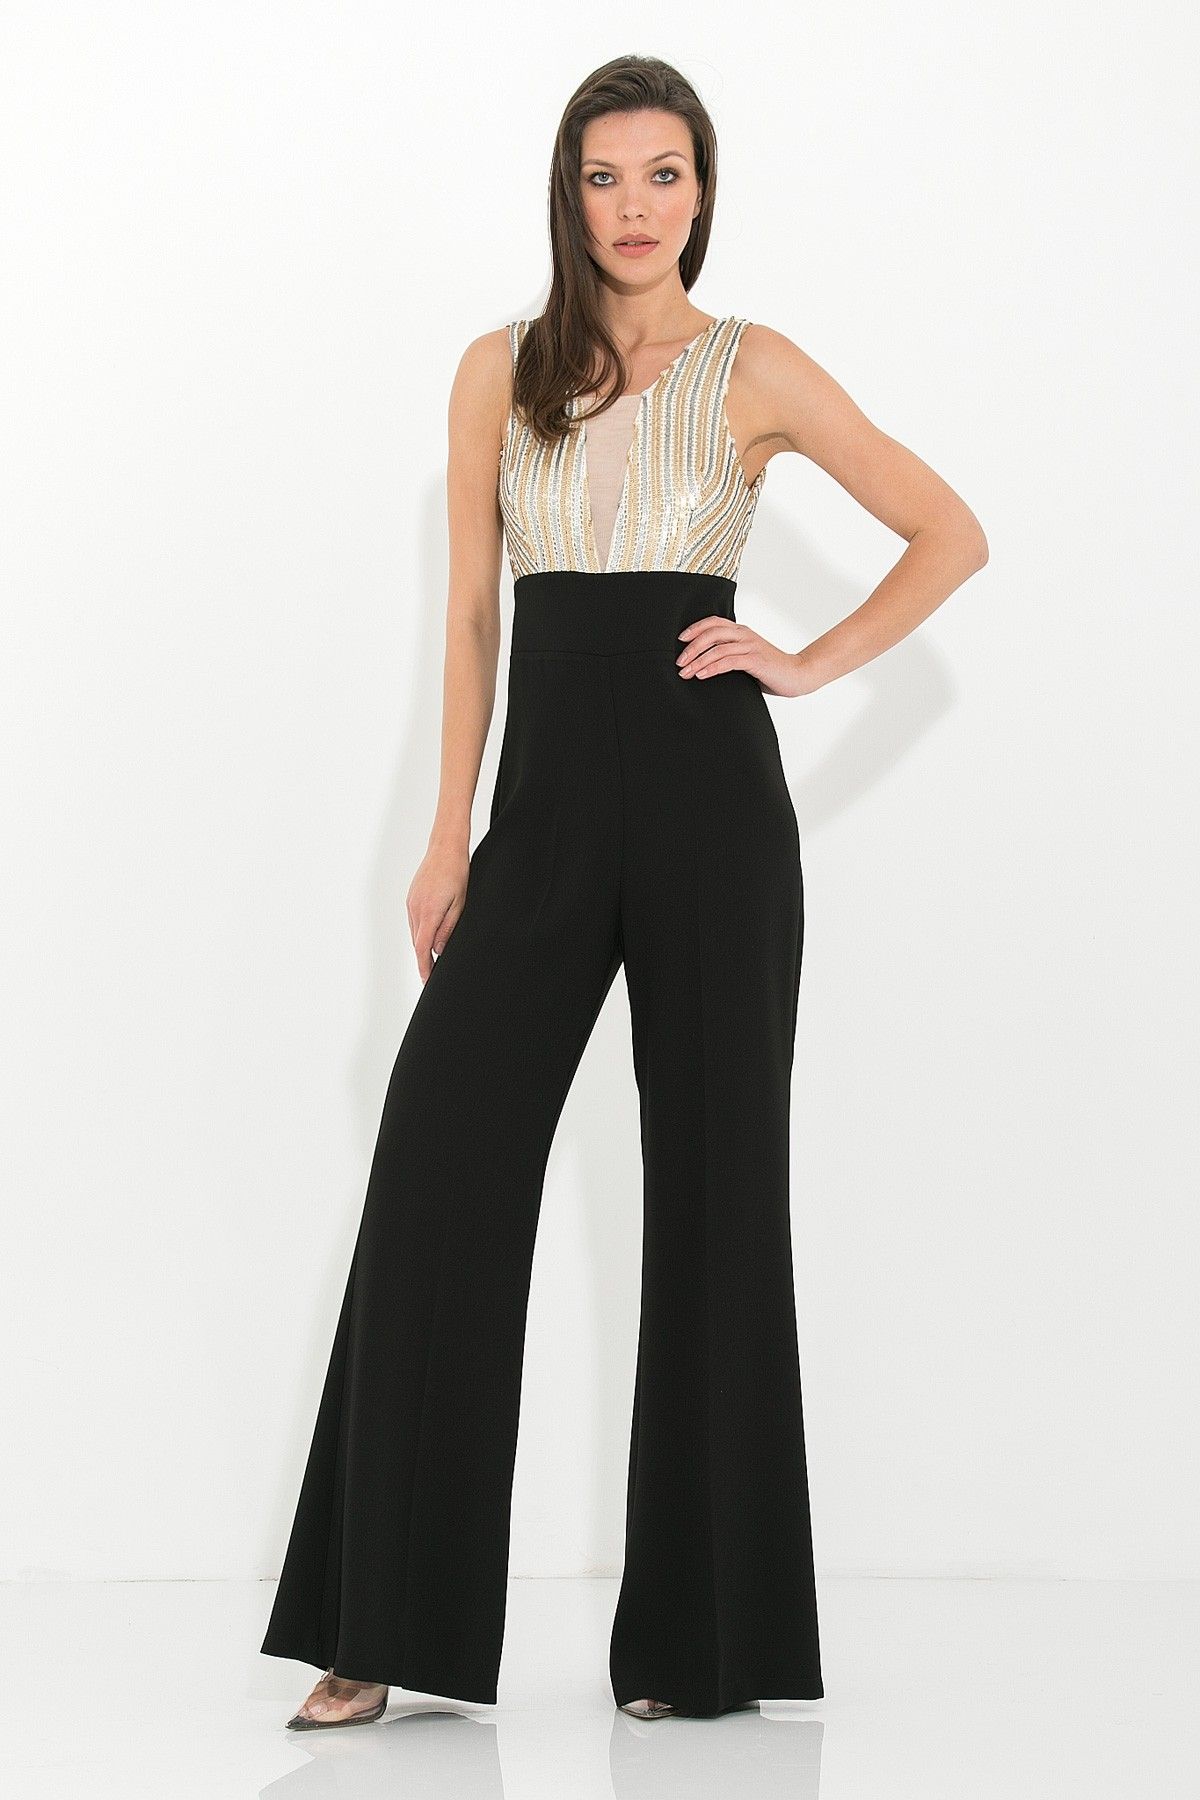 BLACK JUMPSUIT WITH SEQUINS